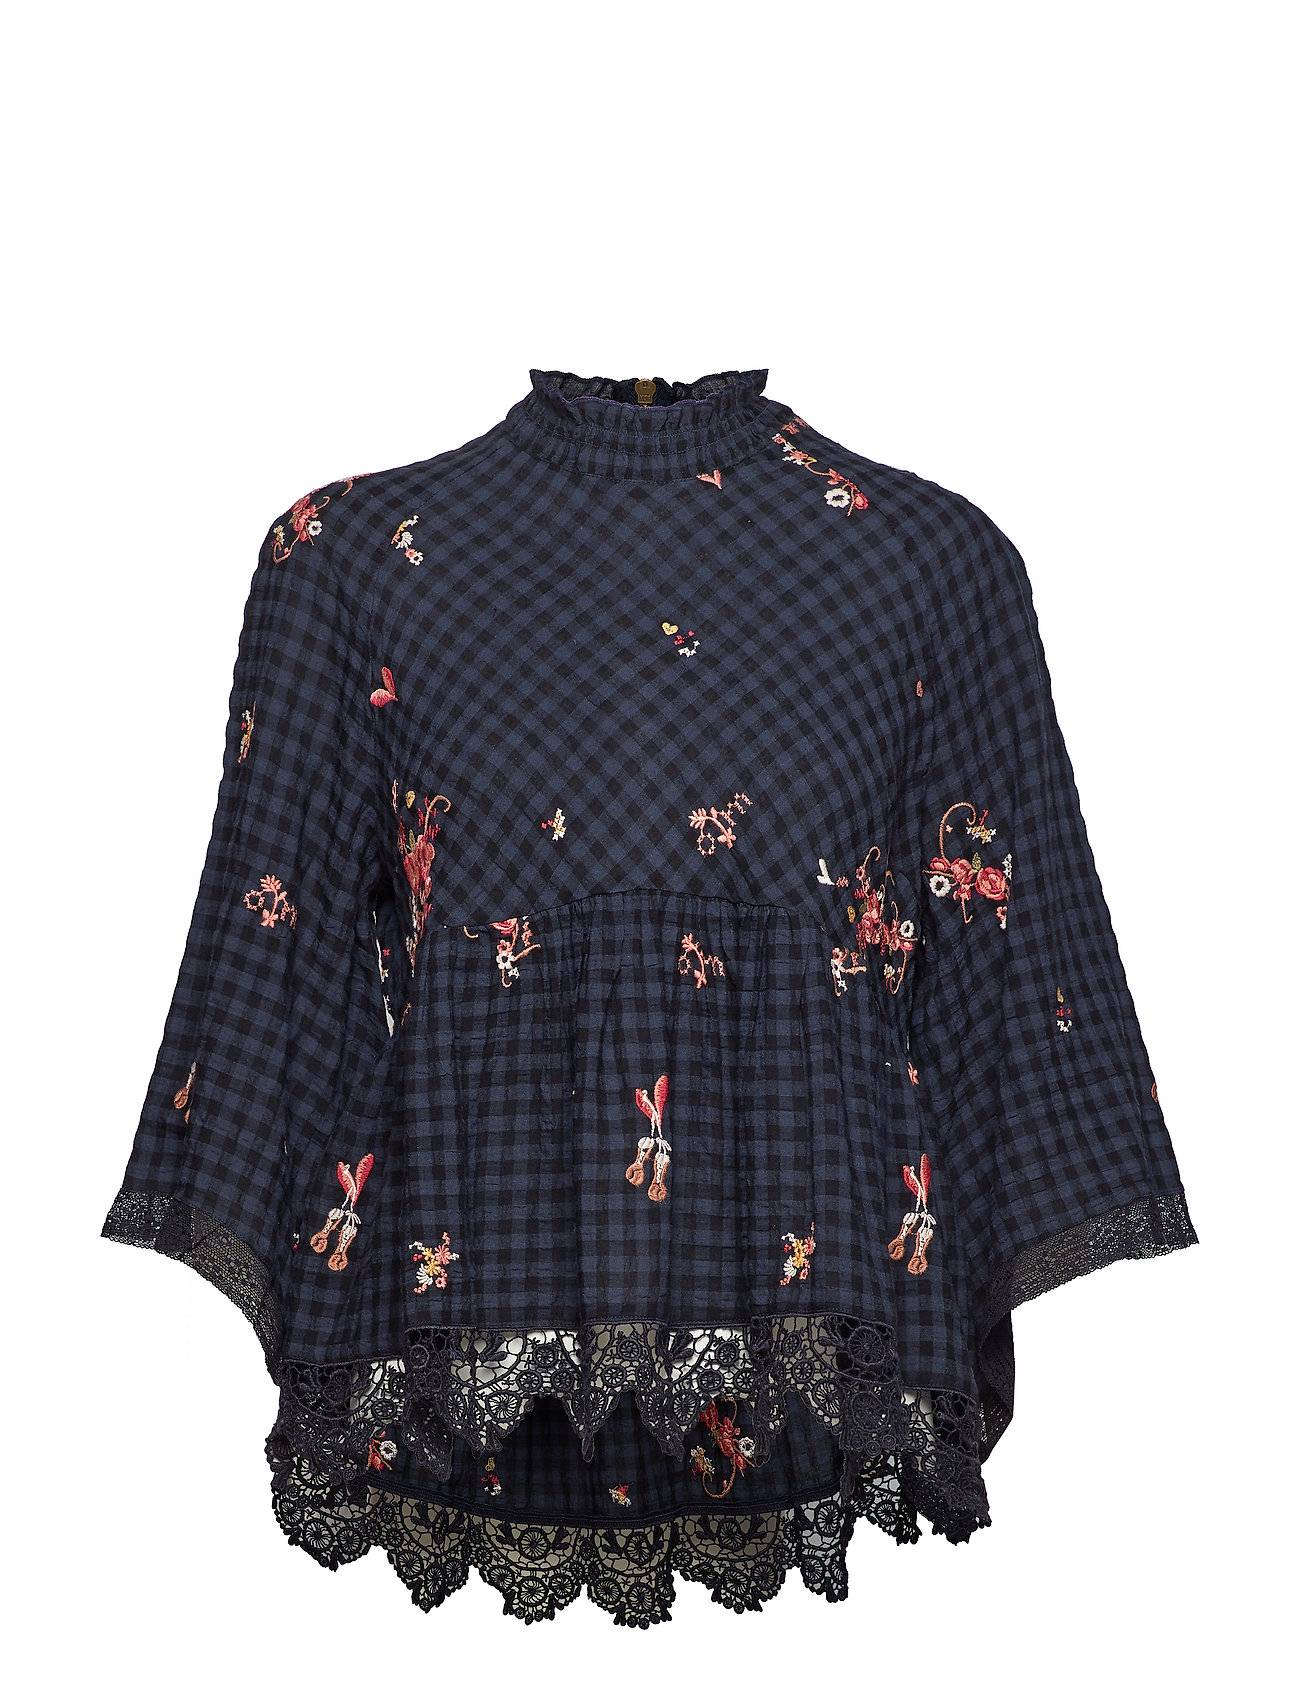 Image of ODD MOLLY Embroidered Space Roses Blouse Pitkähihainen Pusero Paita Sininen ODD MOLLY